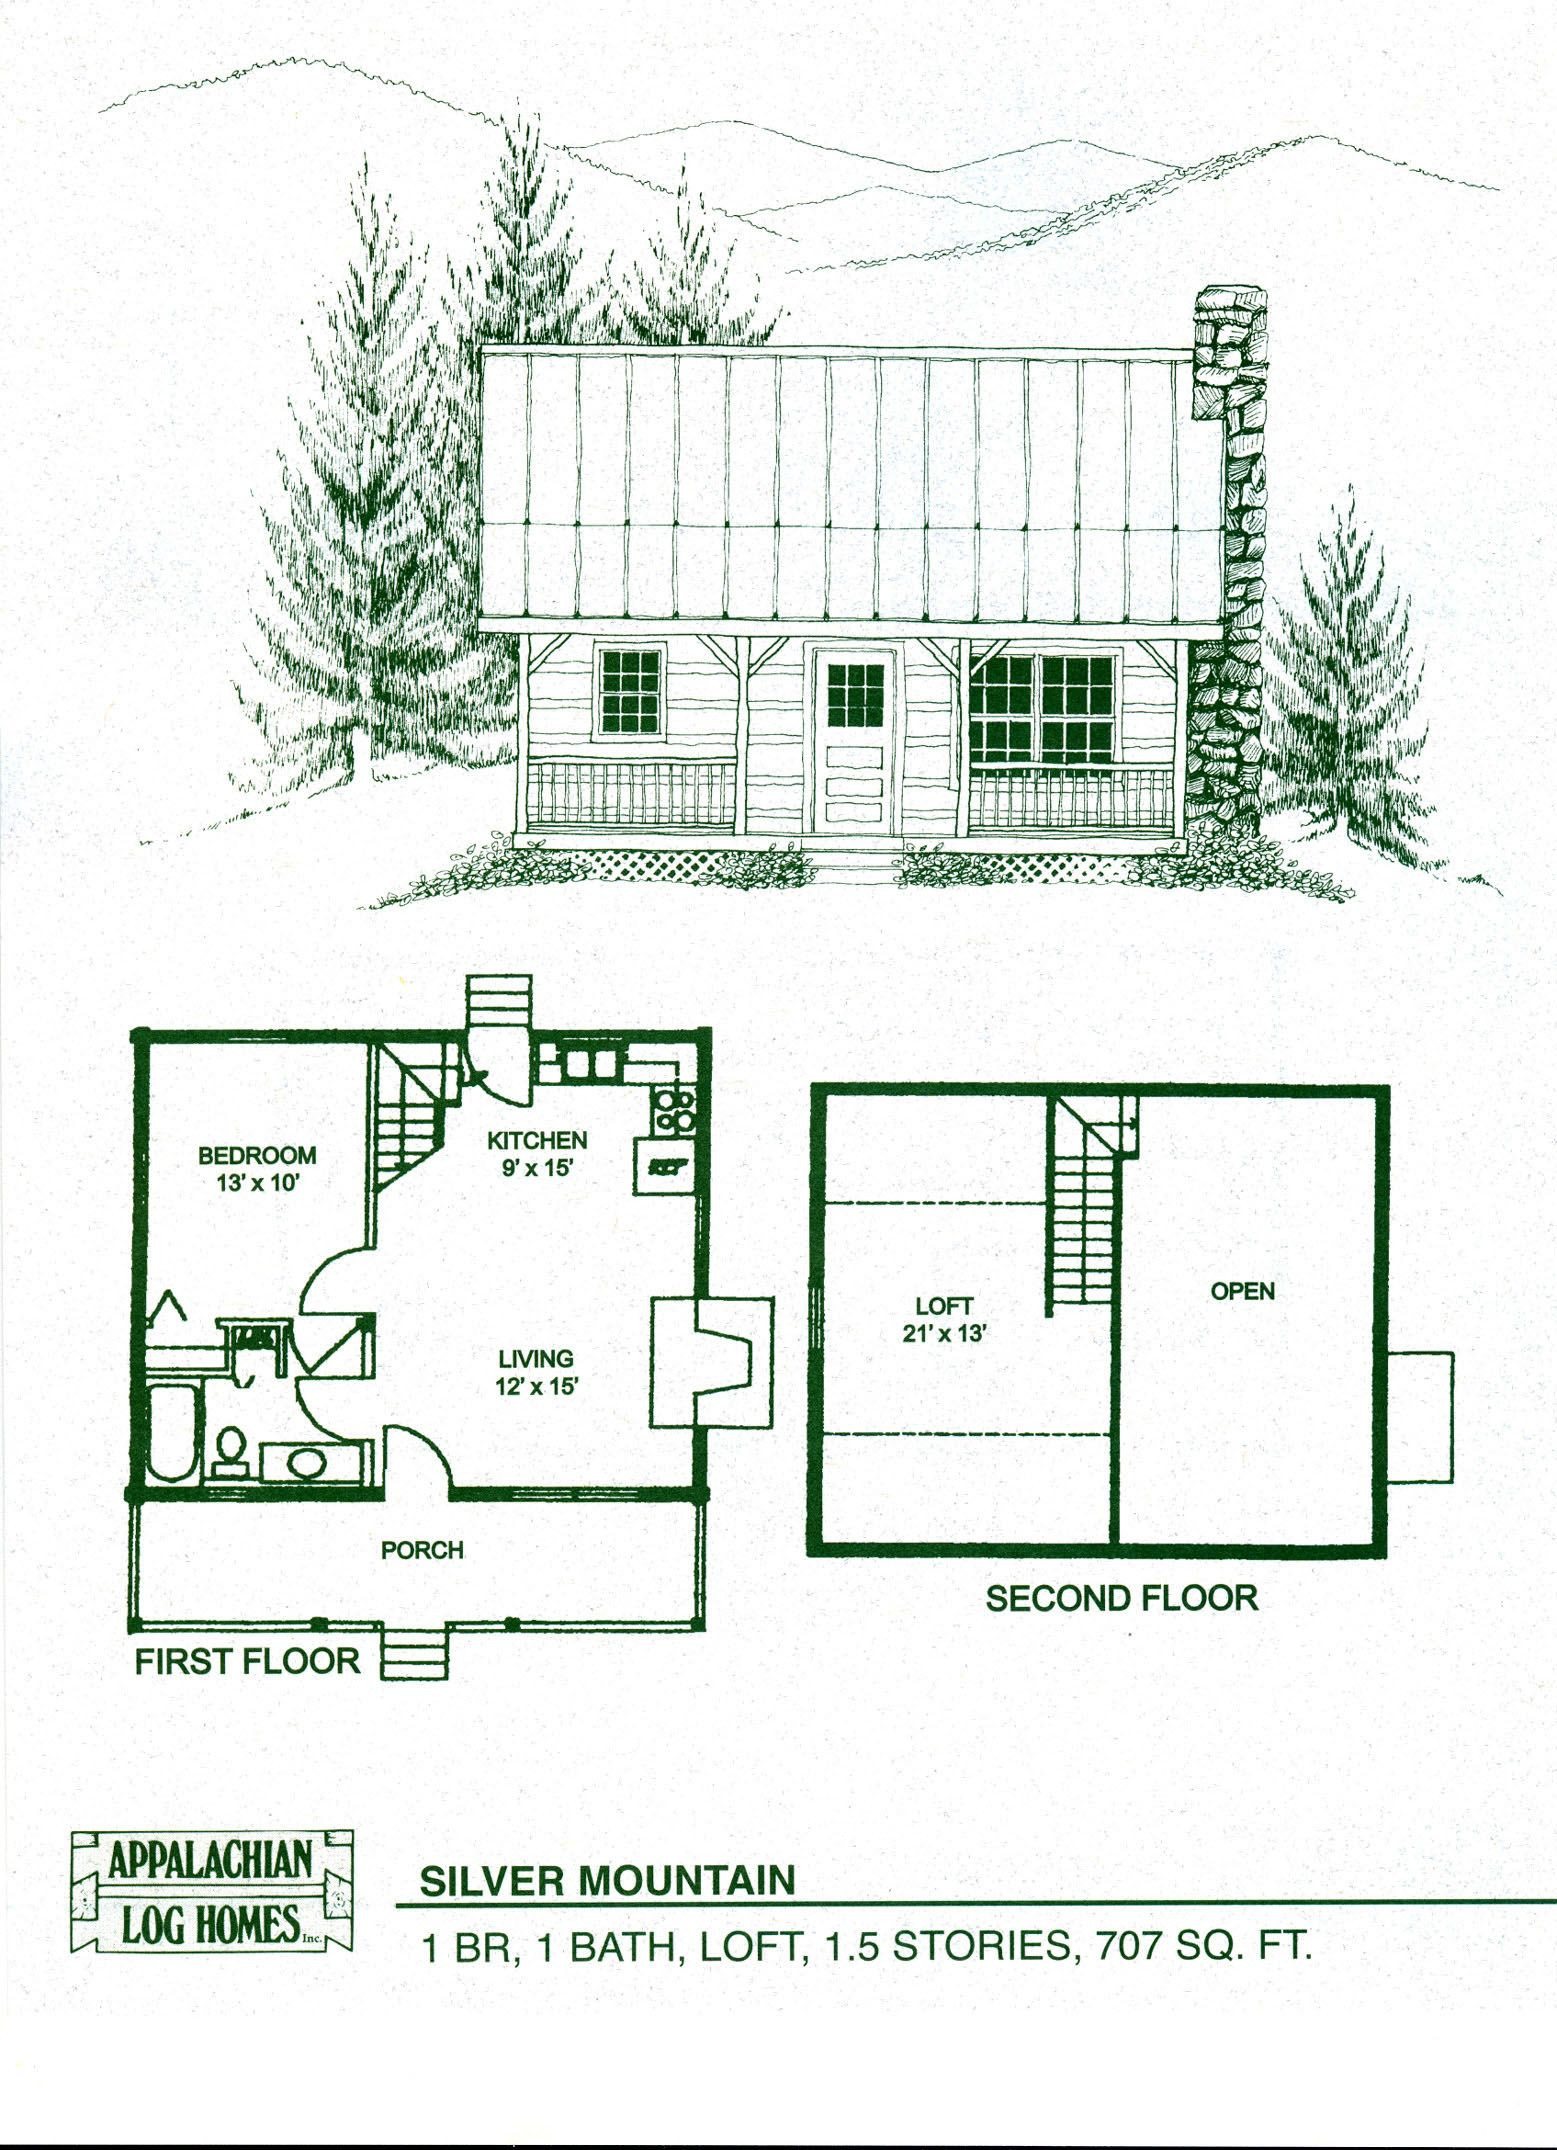 House Plans for Cabins and Small Houses New Small Cabin with Loft Floorplans